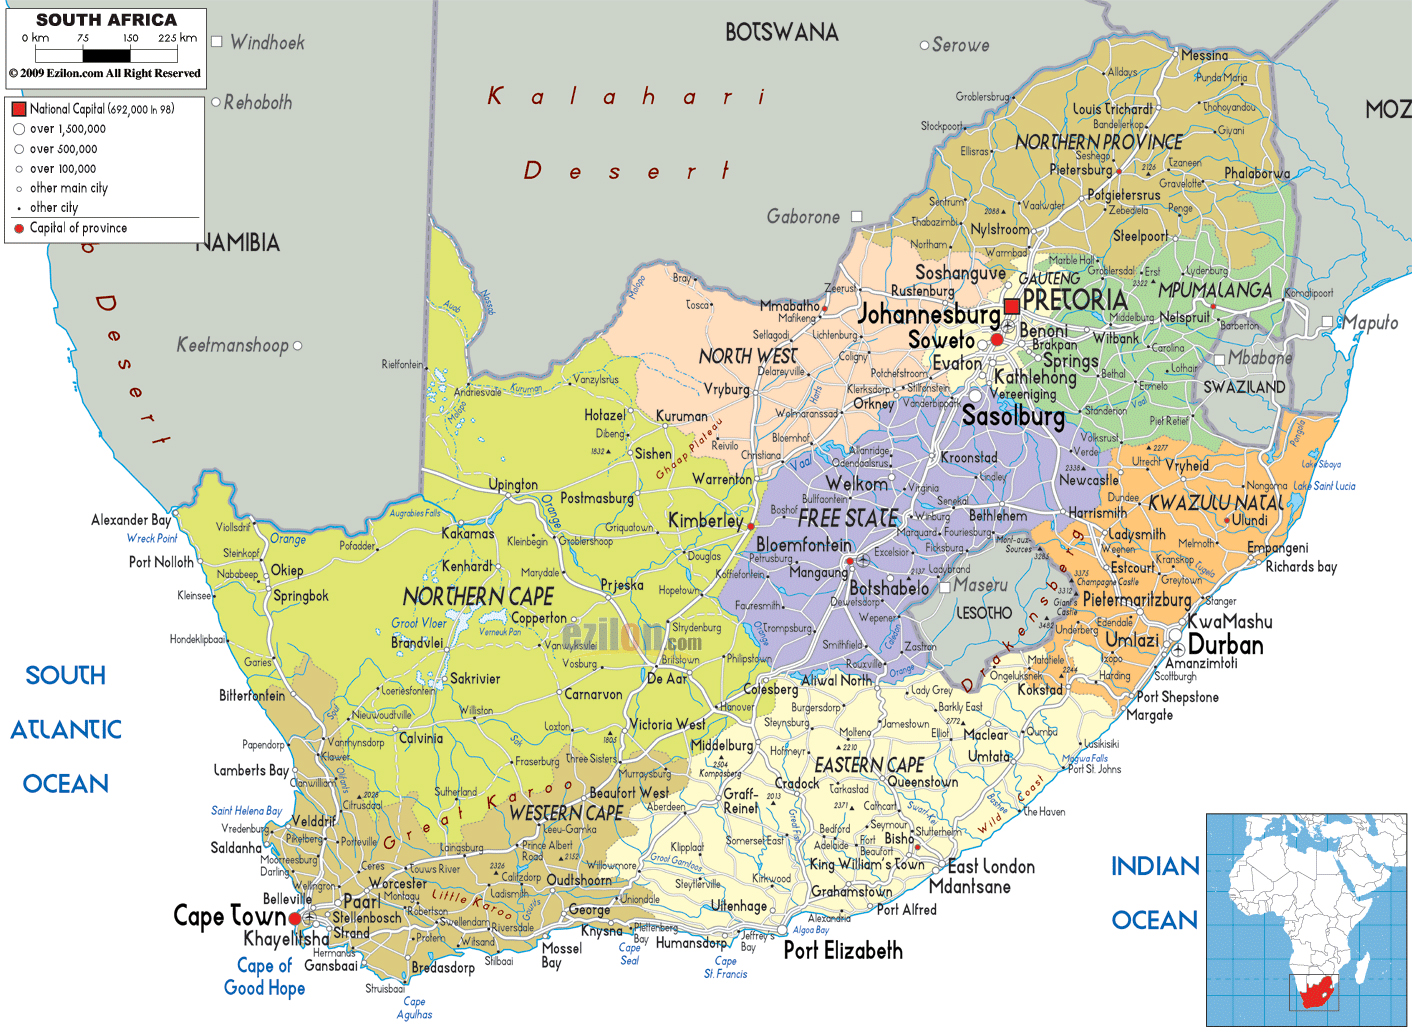 Maps South Africa.Large Political And Administrative Map Of South Africa With Roads